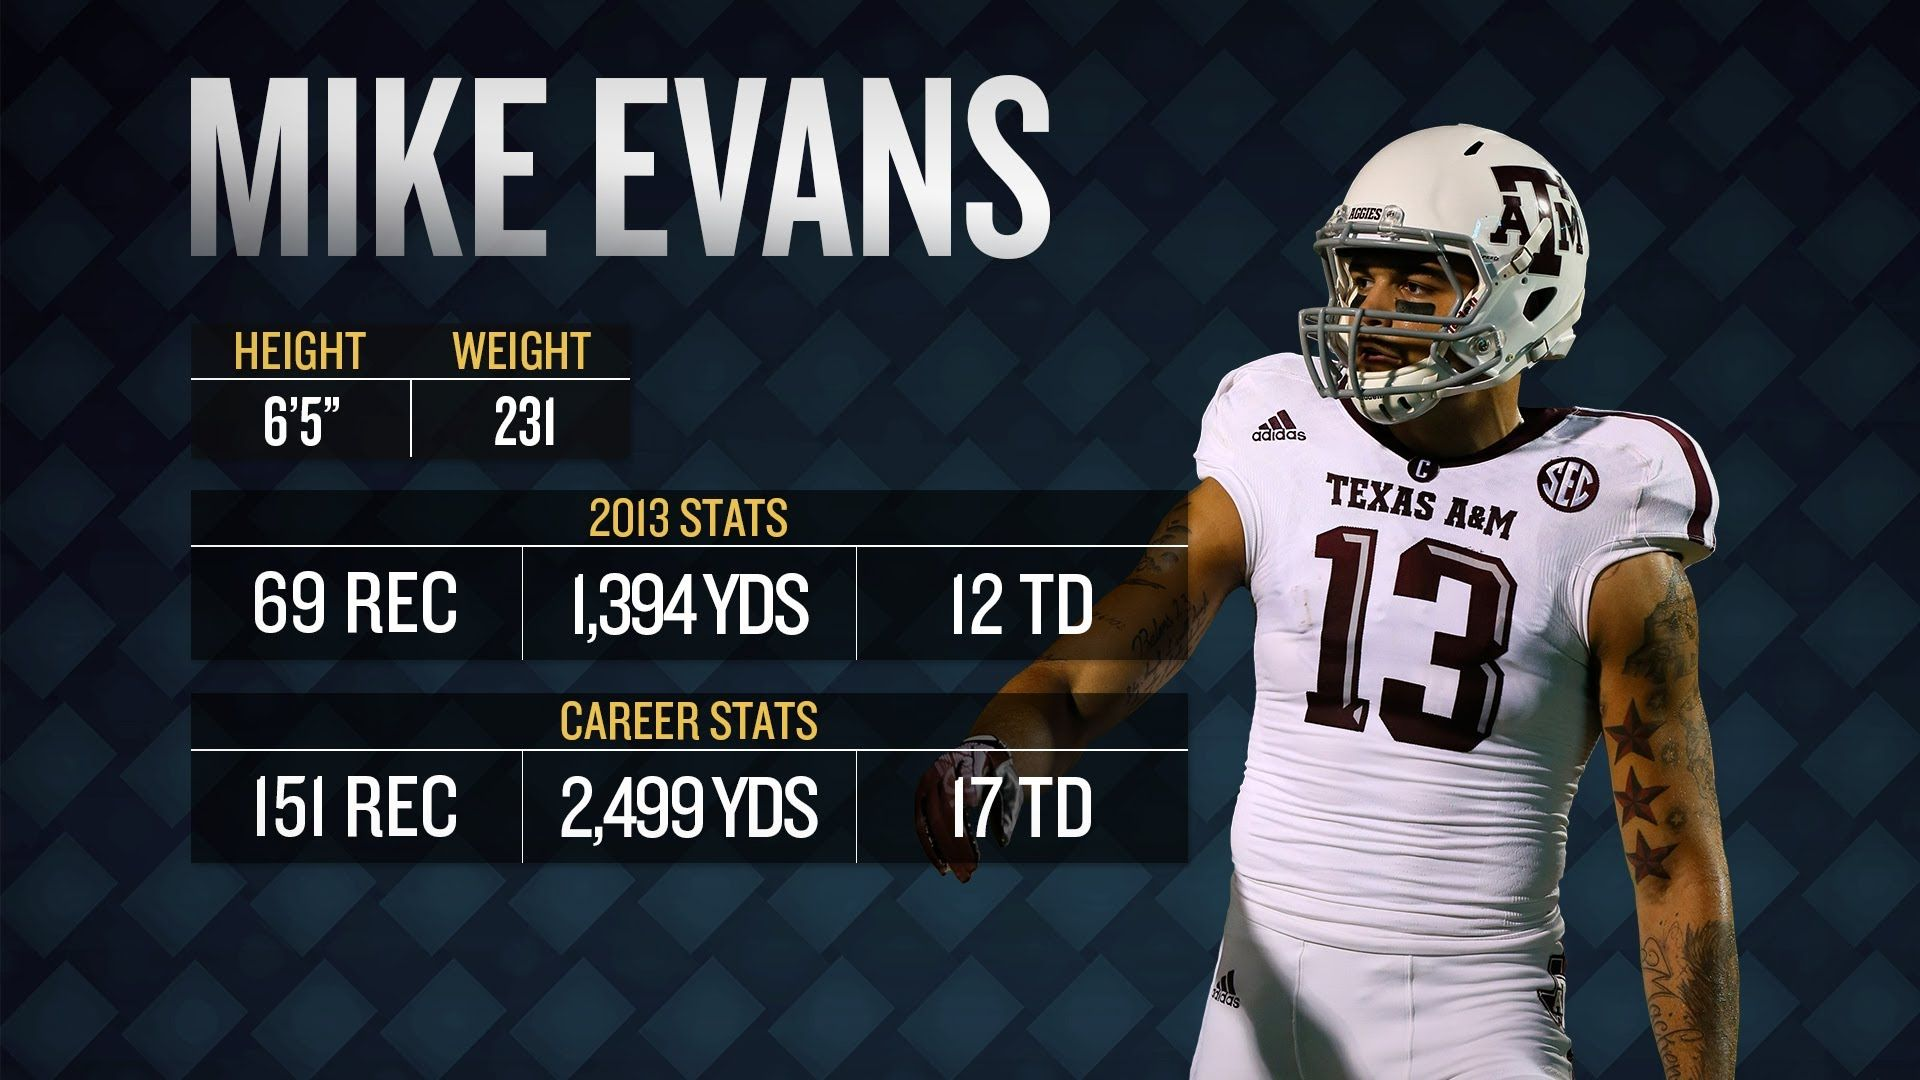 Mike Evans Future Red Zone Favorite 2014 Nfl Draft Scouting Report Mike Evans Red Zone Nfl Draft